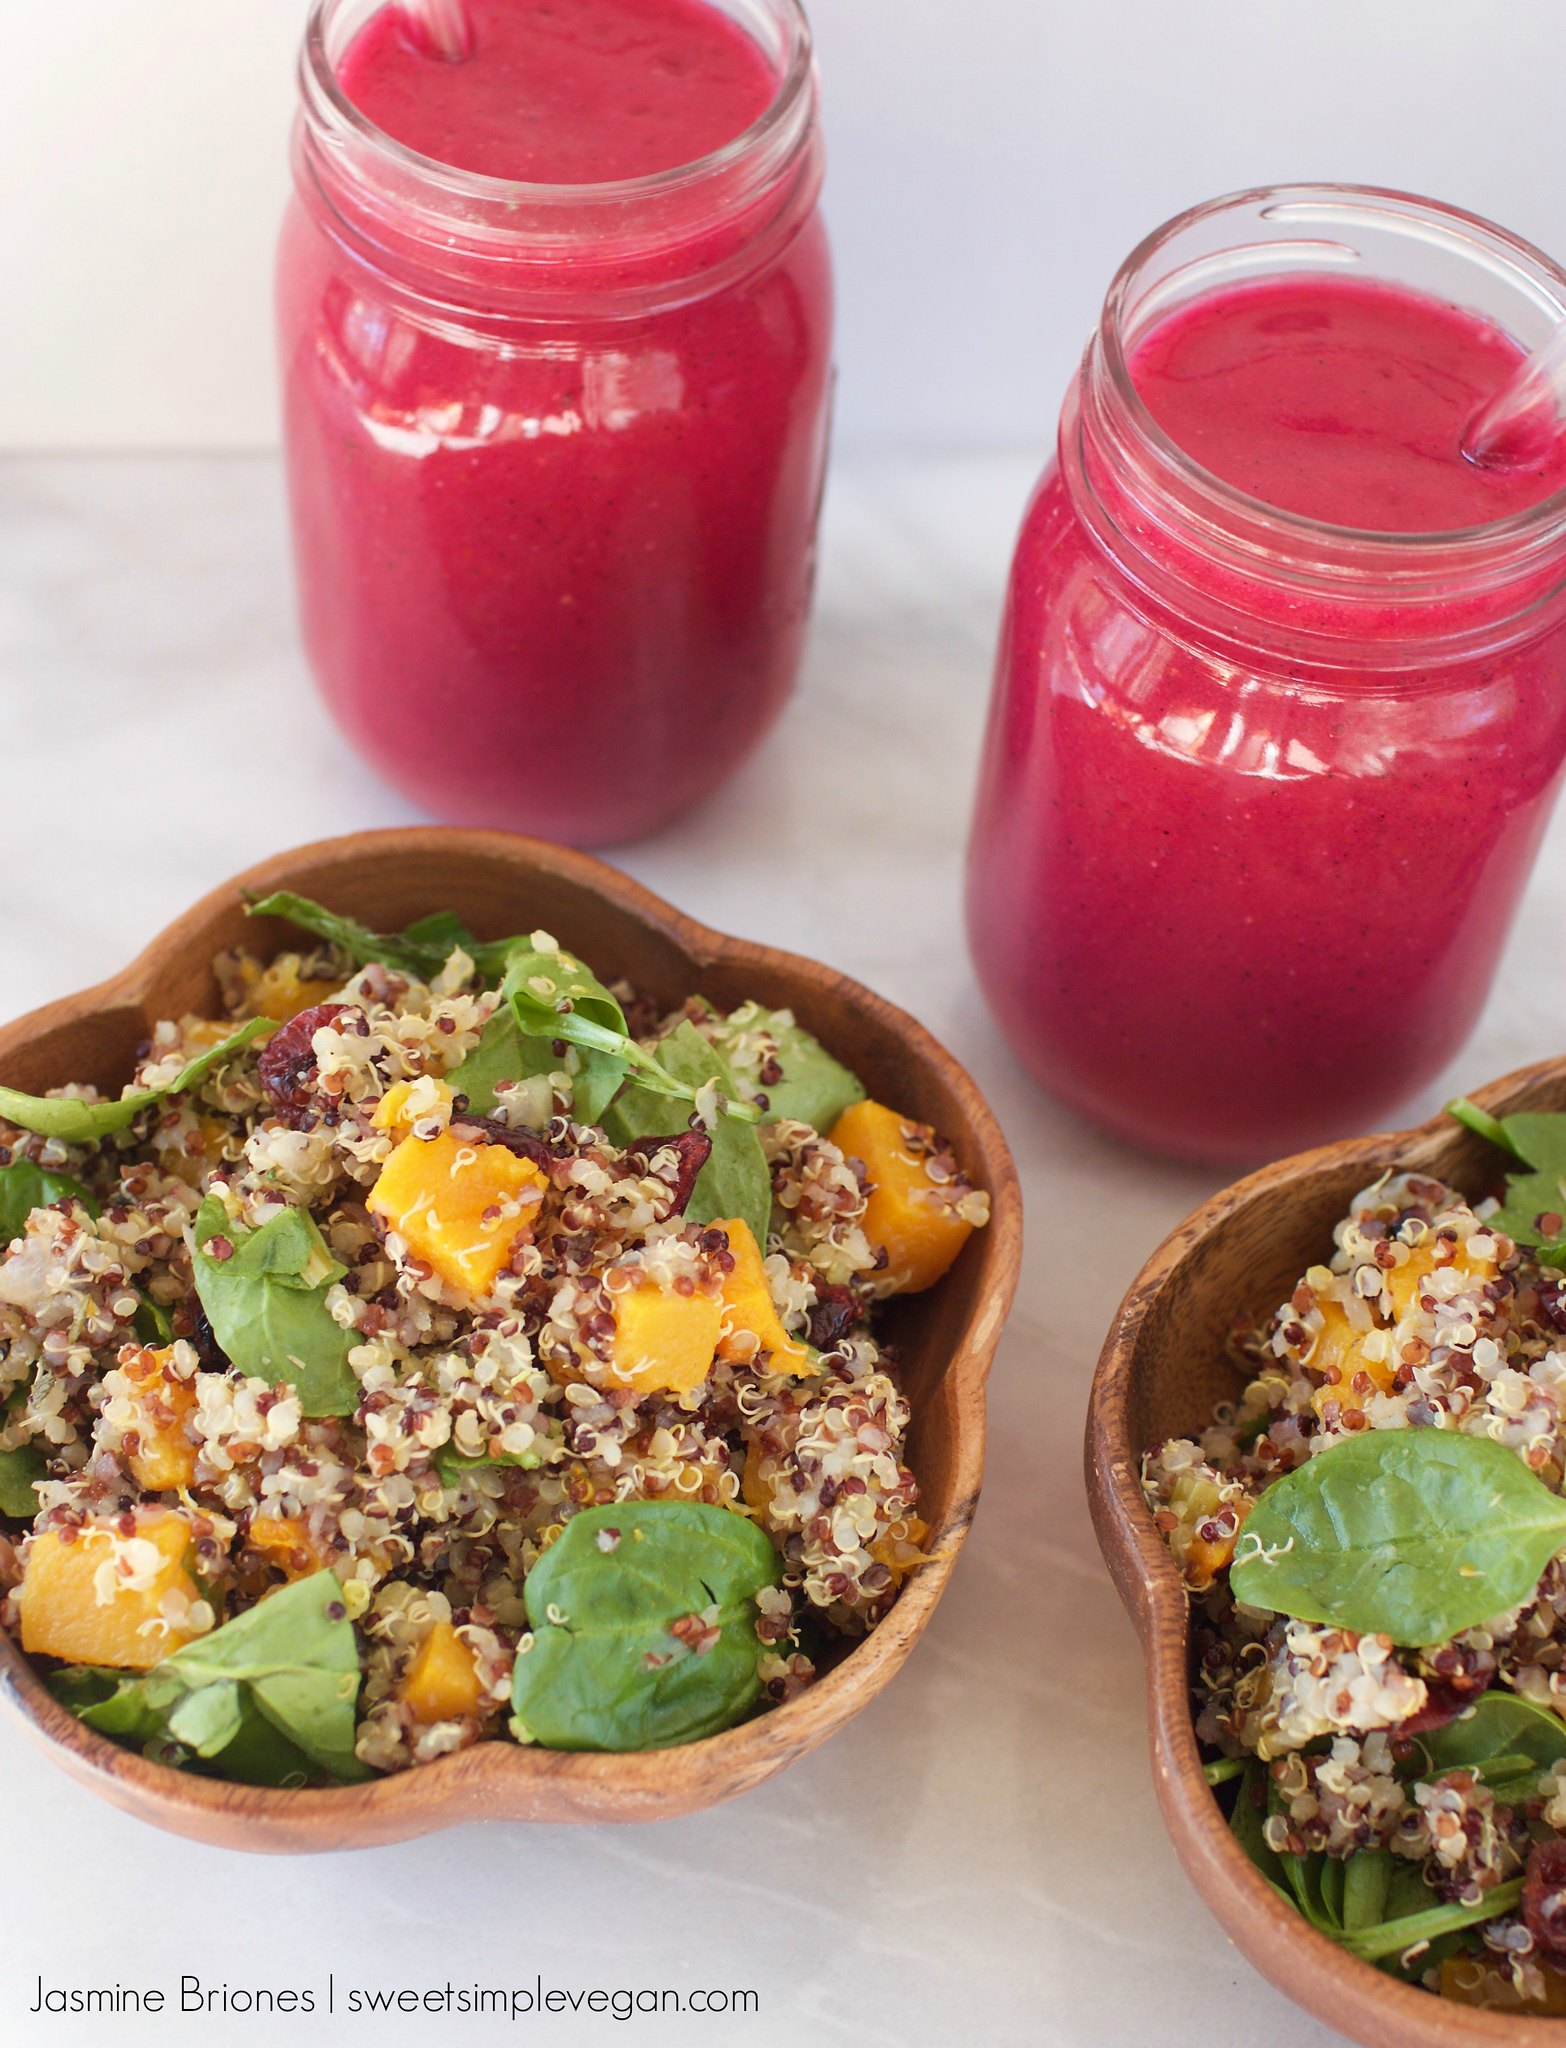 Butternut Squash Quinoa Salad With Lemon & Fresh Herbs + Pitaya Smoothies!